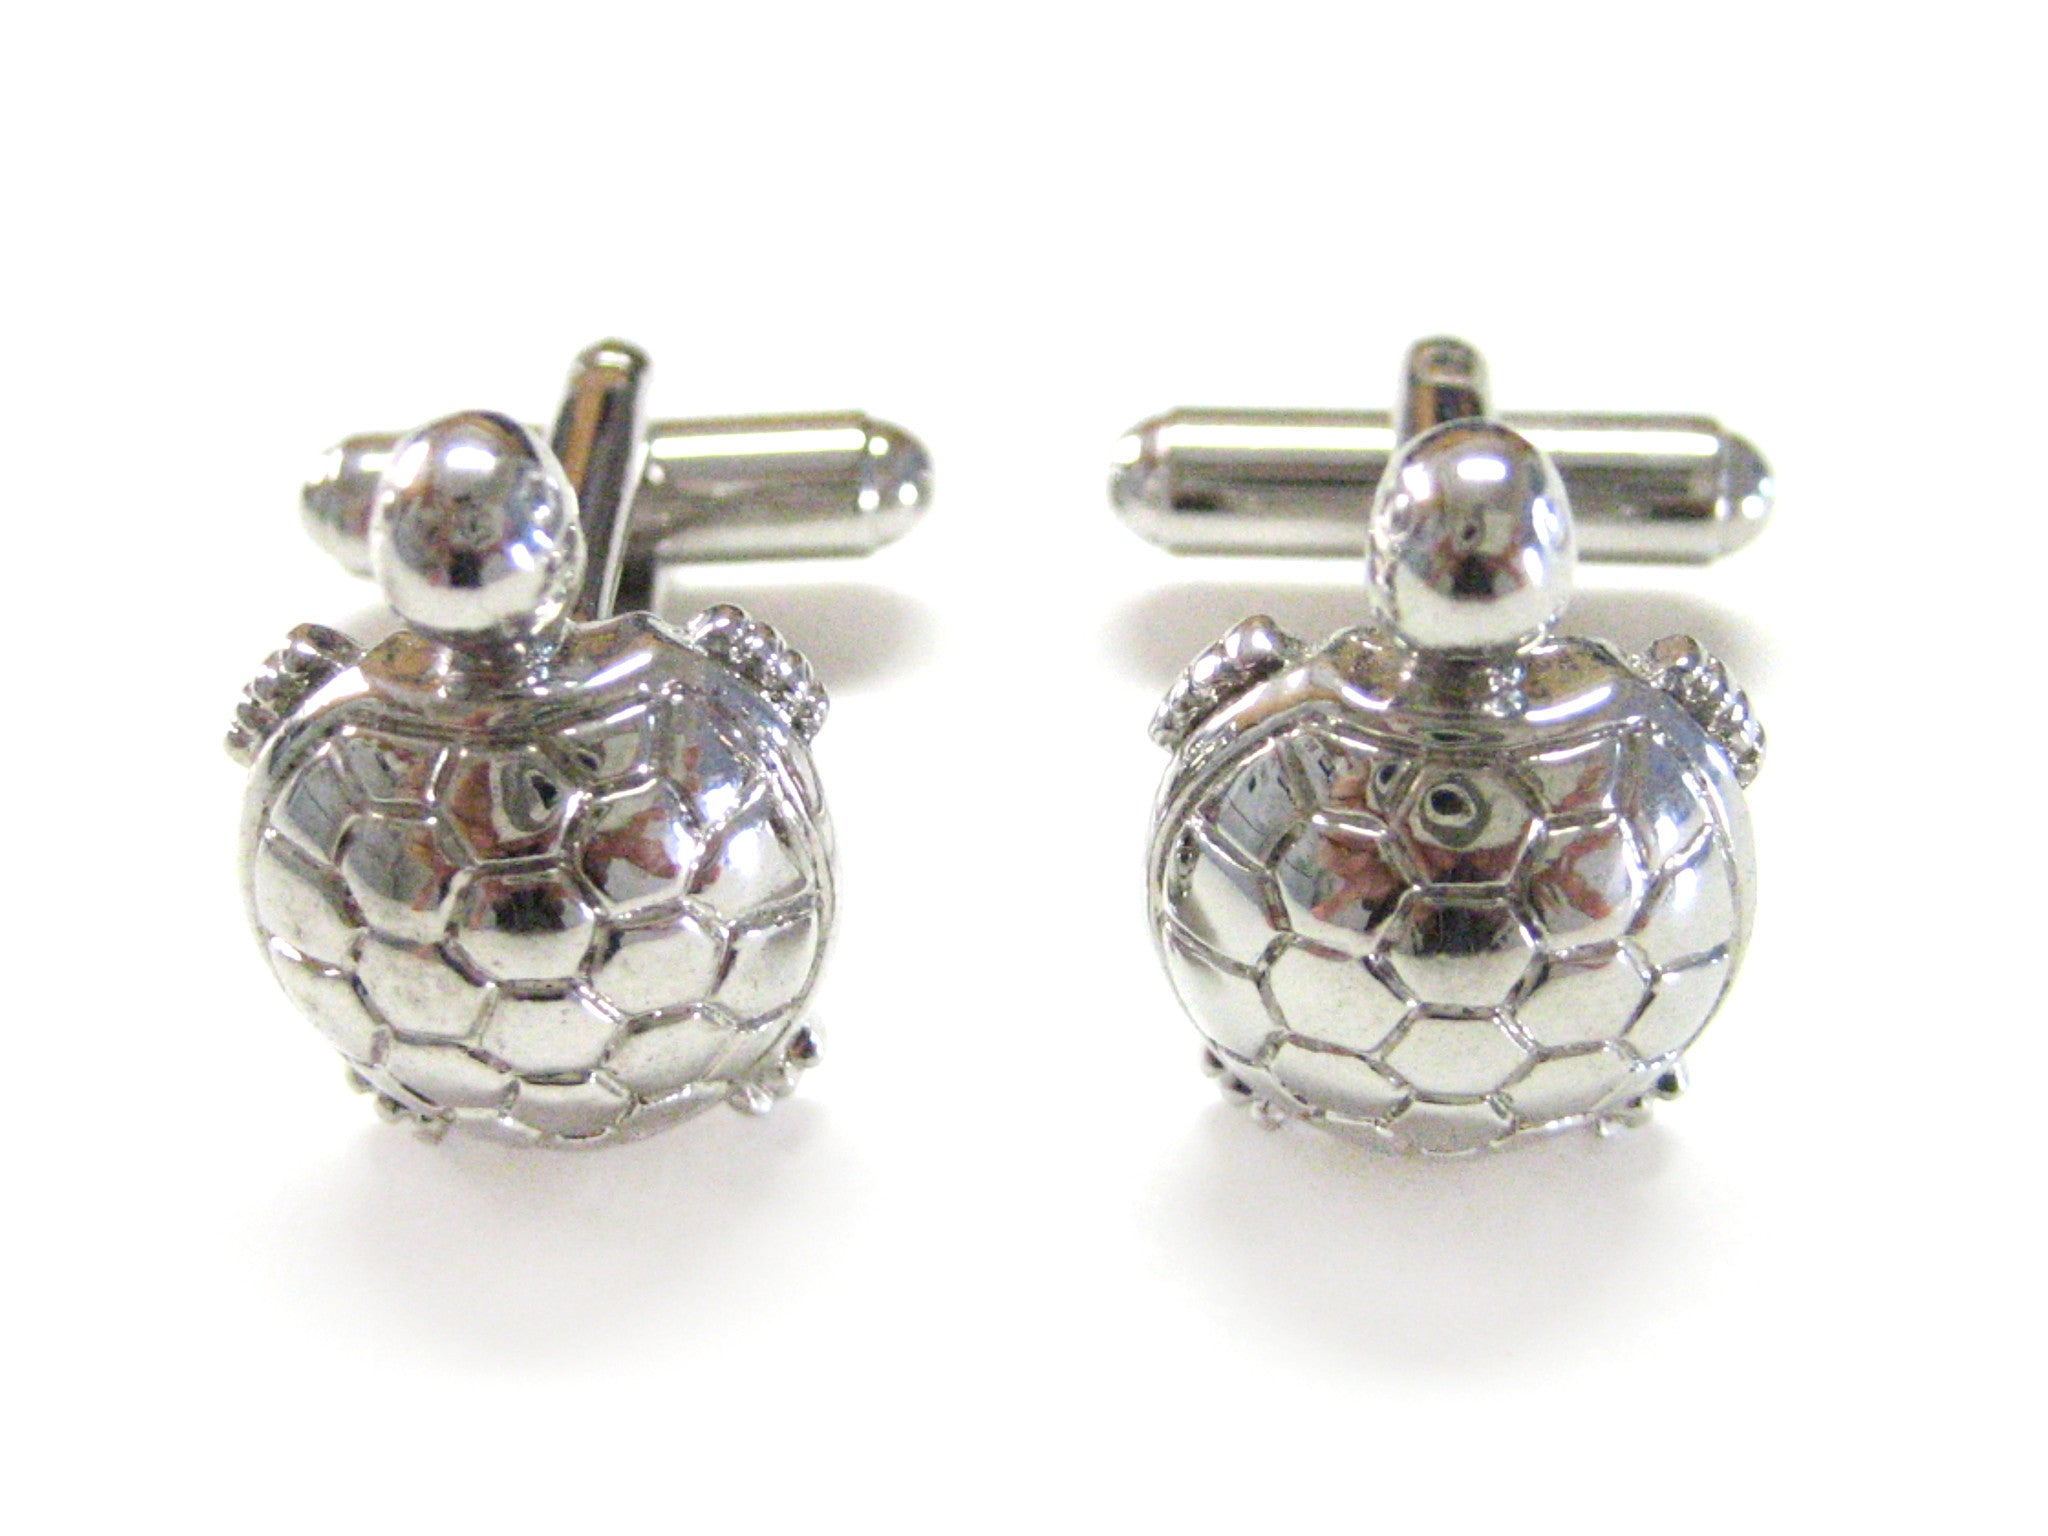 Metal Turtle Cufflinks